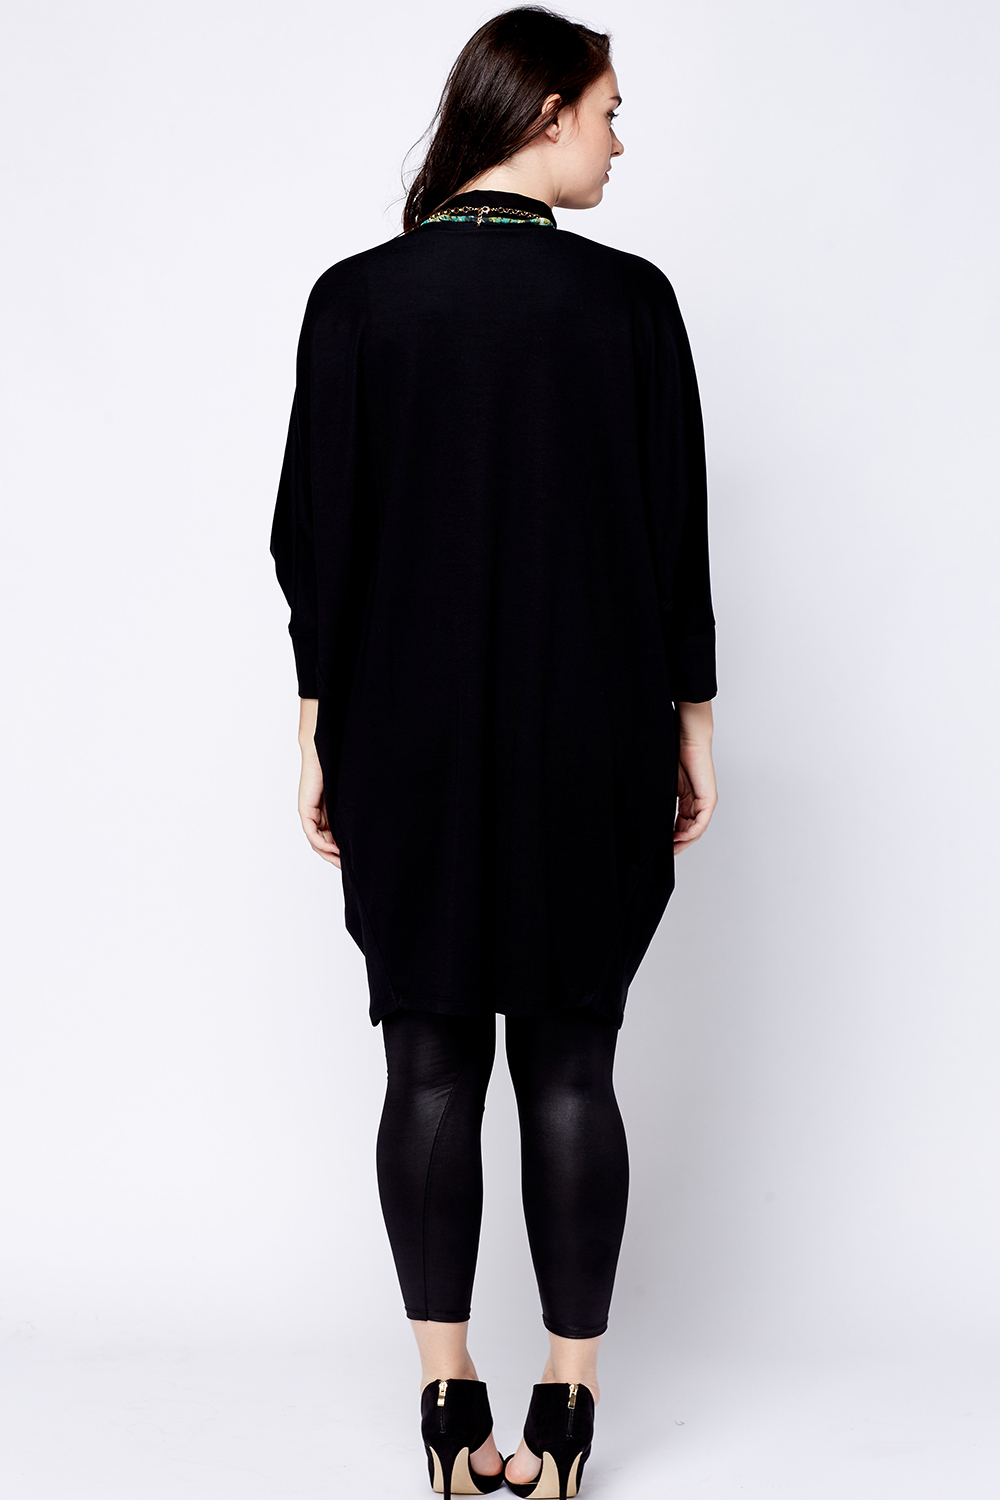 Long Line Batwing Cardigan - Just £5